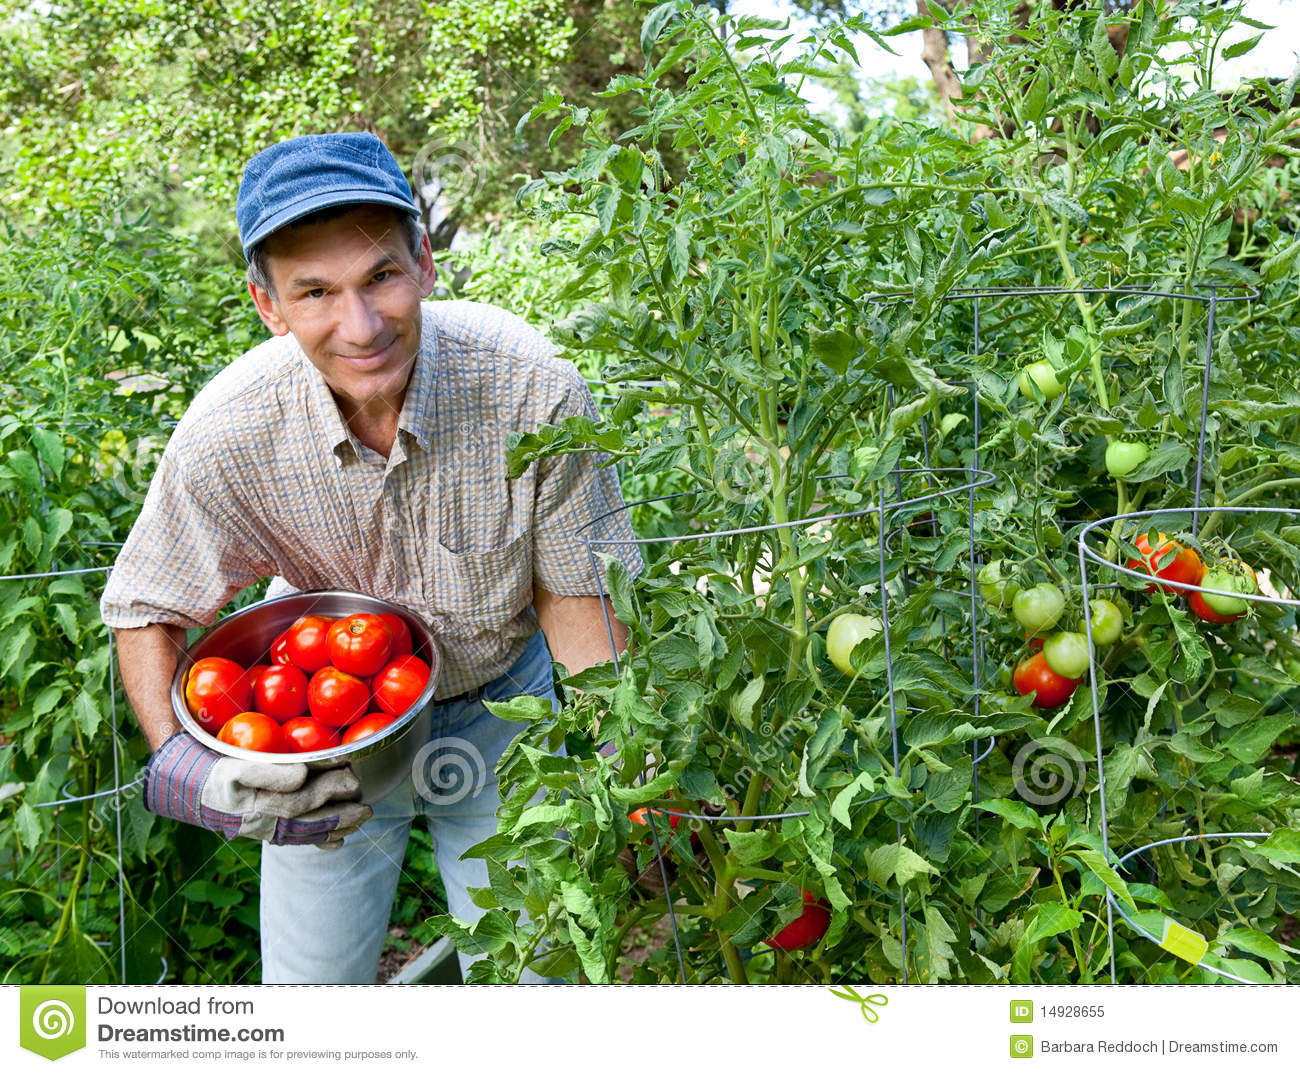 happy-man-picking-tomatoes-his-vegetable-garden-14928655.jpg